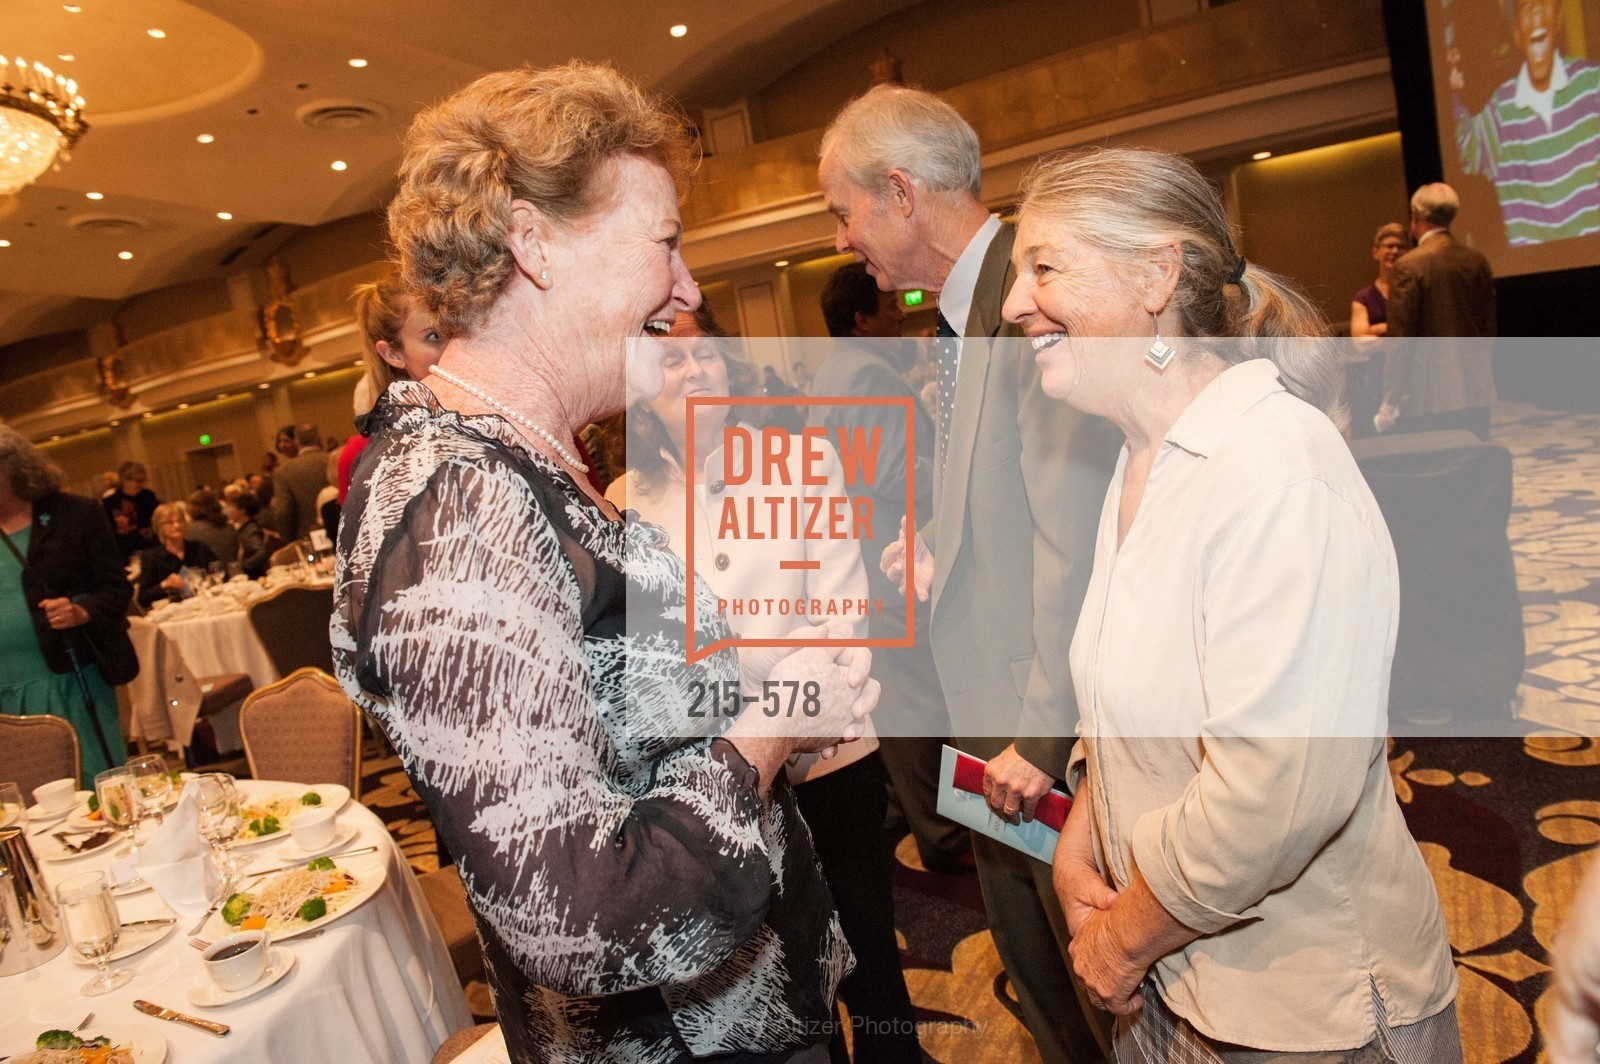 Aileen Ryan, Sheila O'Brien, HOMELESS PRENATAL Annual Luncheon 2014, US, September 30th, 2014,Drew Altizer, Drew Altizer Photography, full-service agency, private events, San Francisco photographer, photographer california